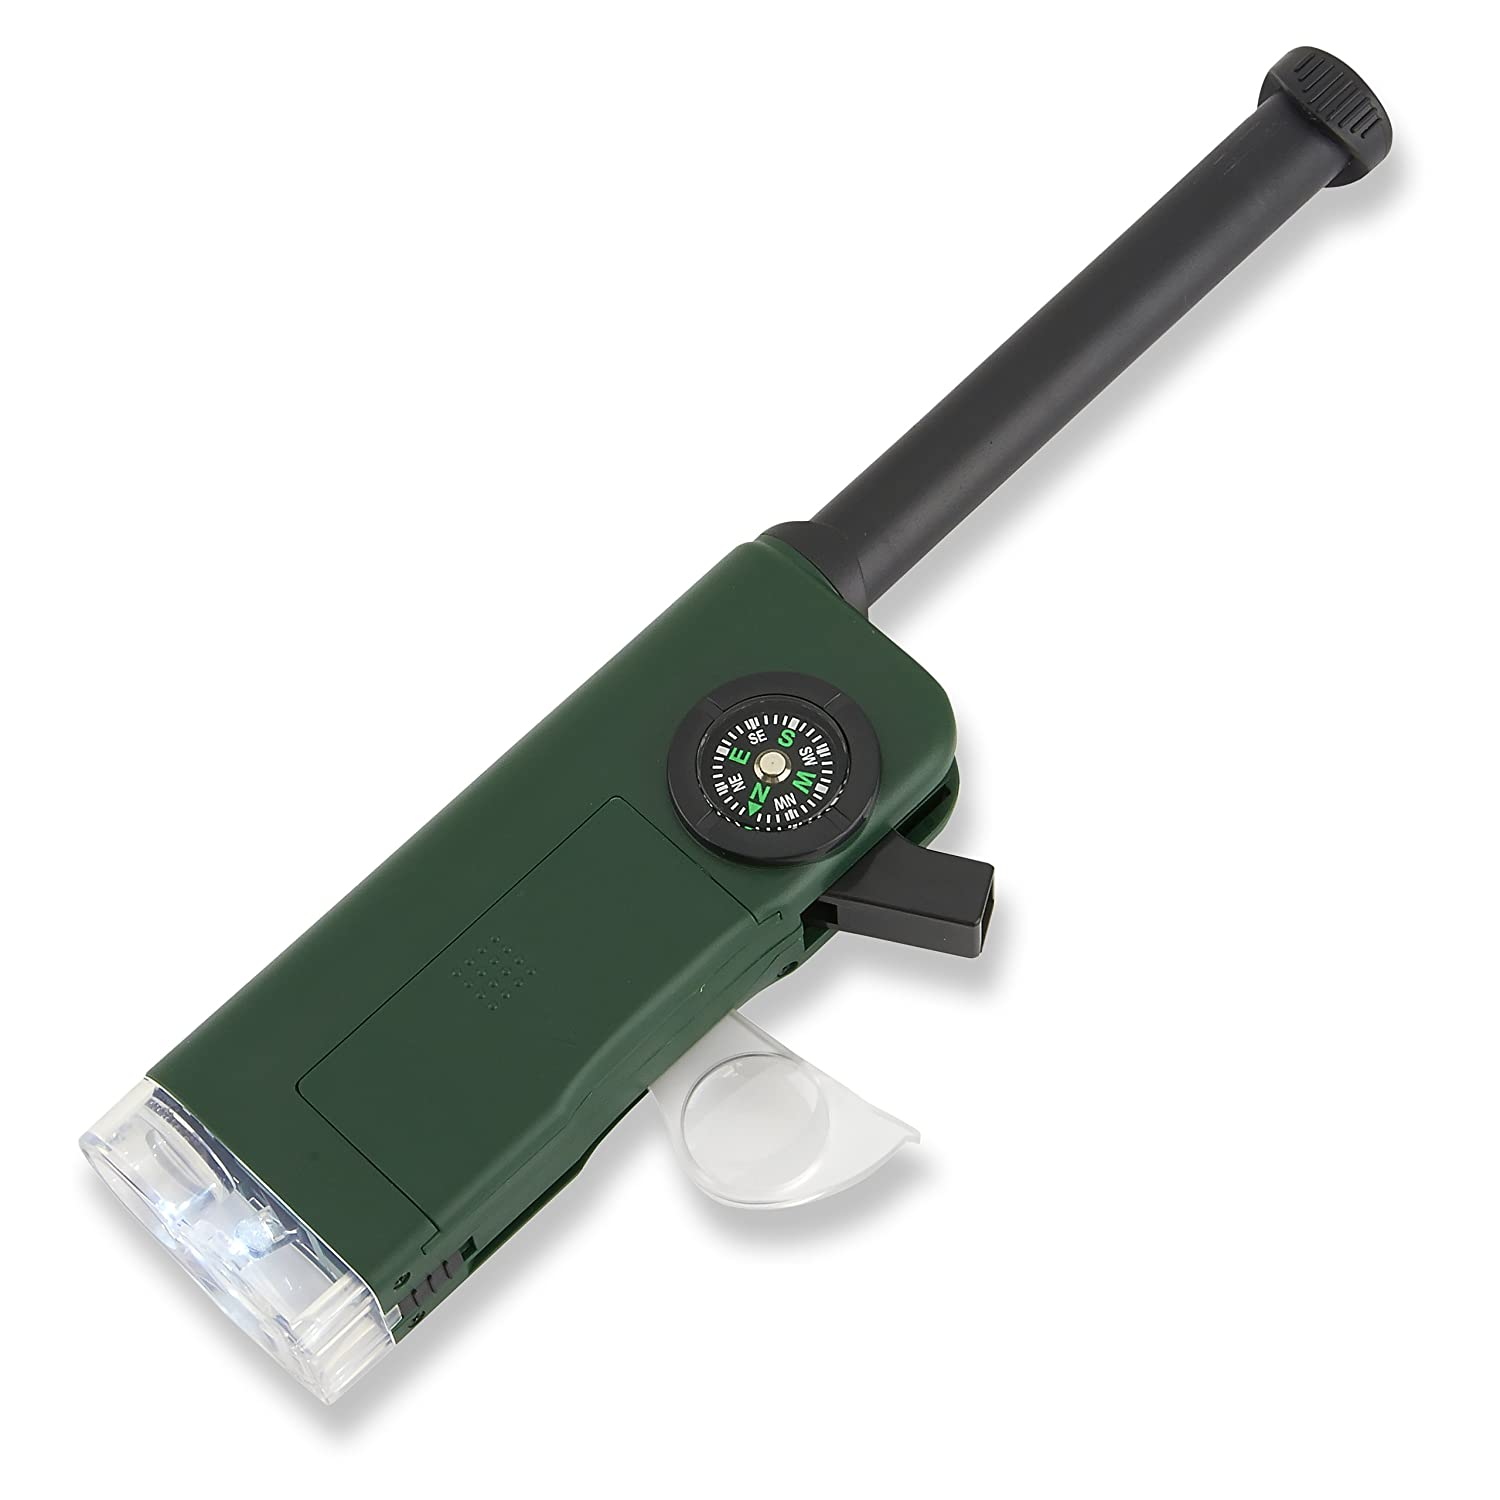 Compass, Flashlight, Digital Clock made our CampingForFoodies hand-selected list of 100+ Camping Stocking Stuffers For RV And Tent Campers!